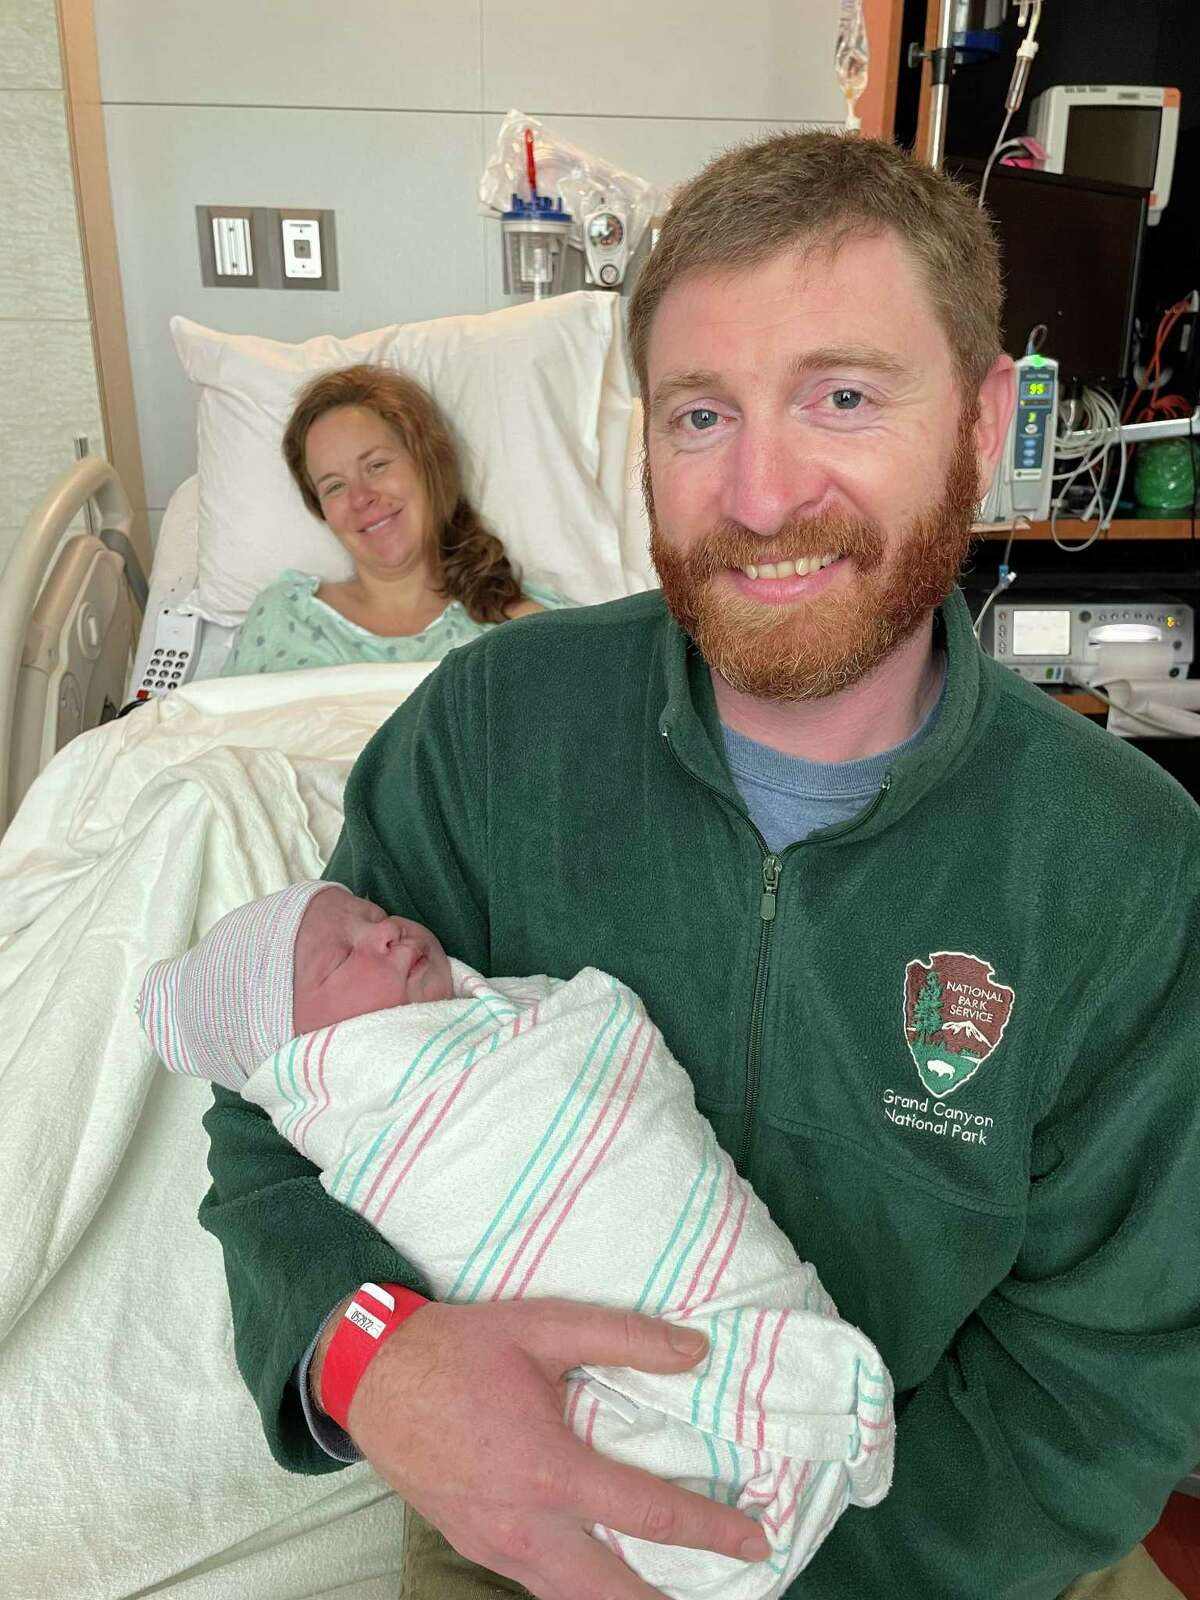 Born at 8:09 a.m. on Friday, Jan. 1, Timothy Jethro Logan was Memorial Hermann Katy Hospital's first birth of 2021. He is pictured here with his parents, Greg and Rebekah Logan.